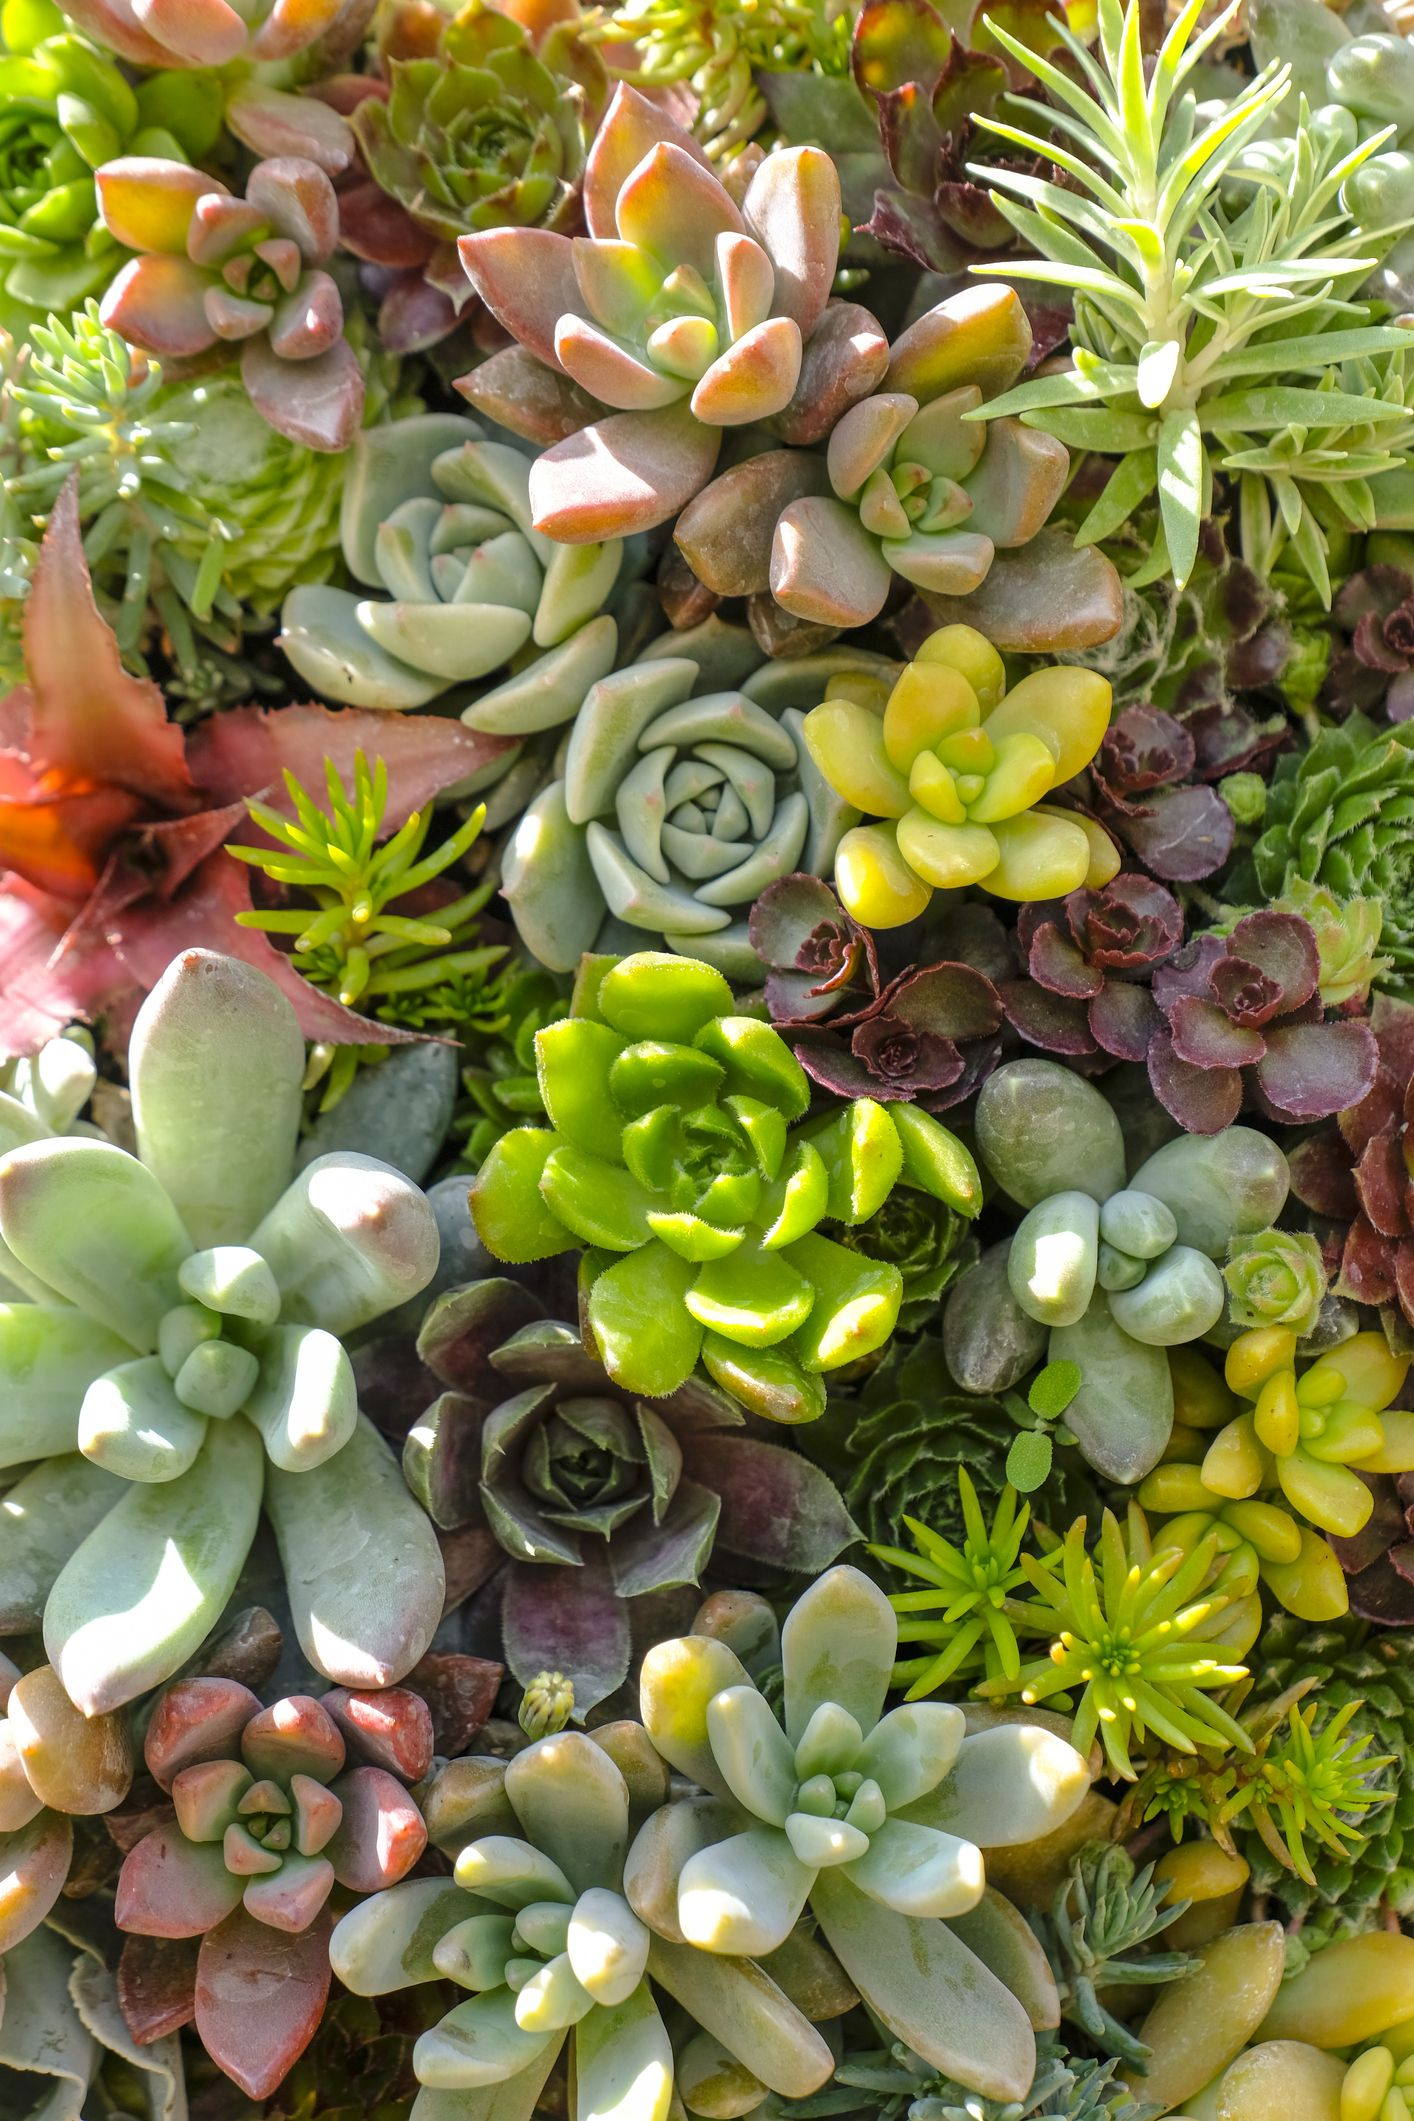 Costco Is Now Selling Succulent Gardens For An Extremely Low Price